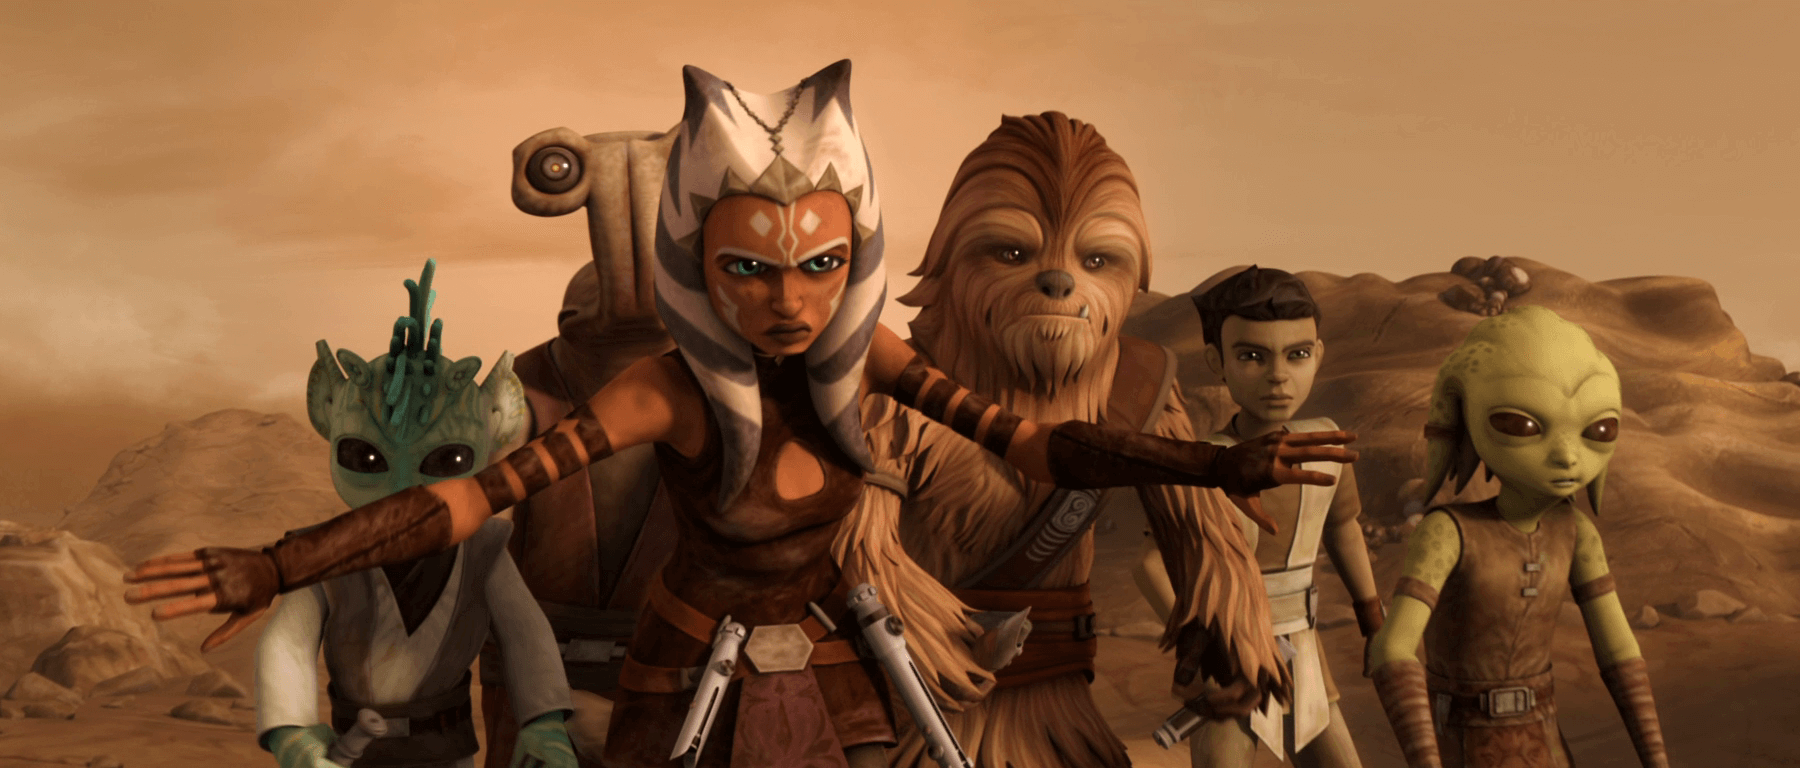 ahsoka-tano-about-to-fight-grievous, Star Wars the Clone Wars, guerra dos clones, série estar wars, cgi star wars, lucasarts, disney